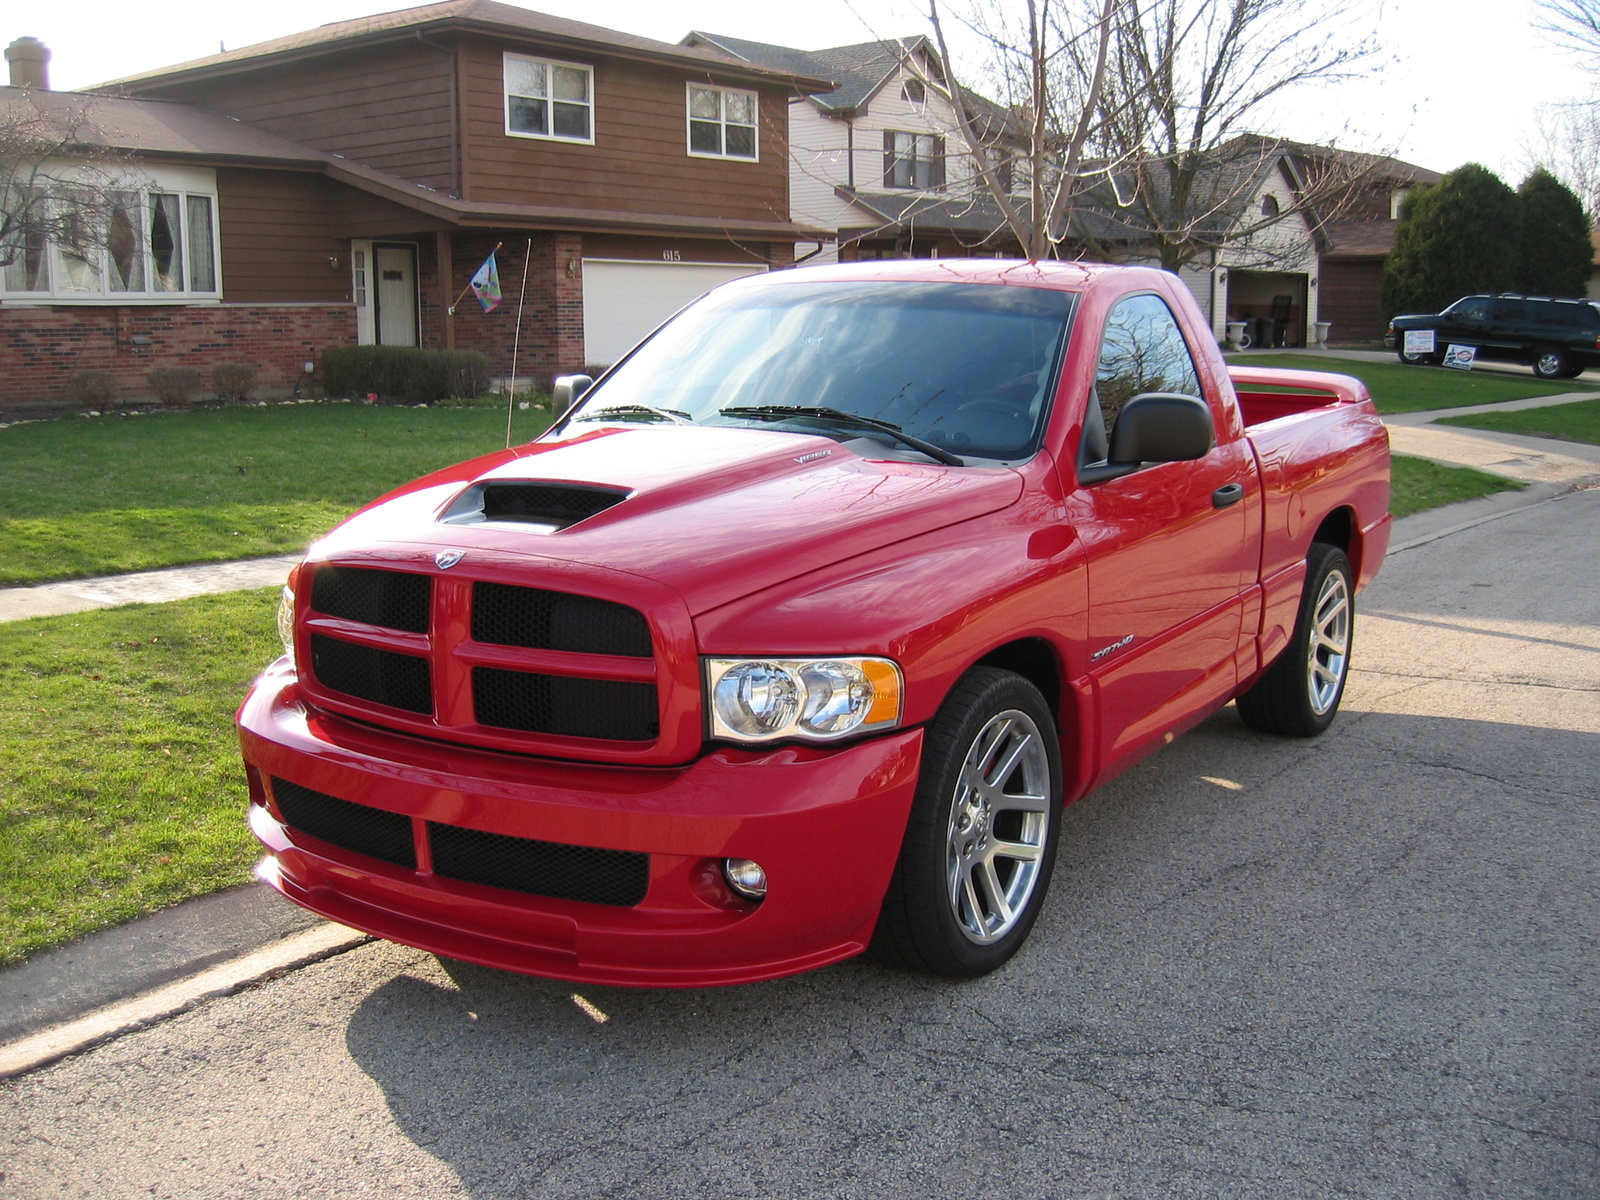 2004 dodge ram 1500 srt 10 car interior design. Black Bedroom Furniture Sets. Home Design Ideas